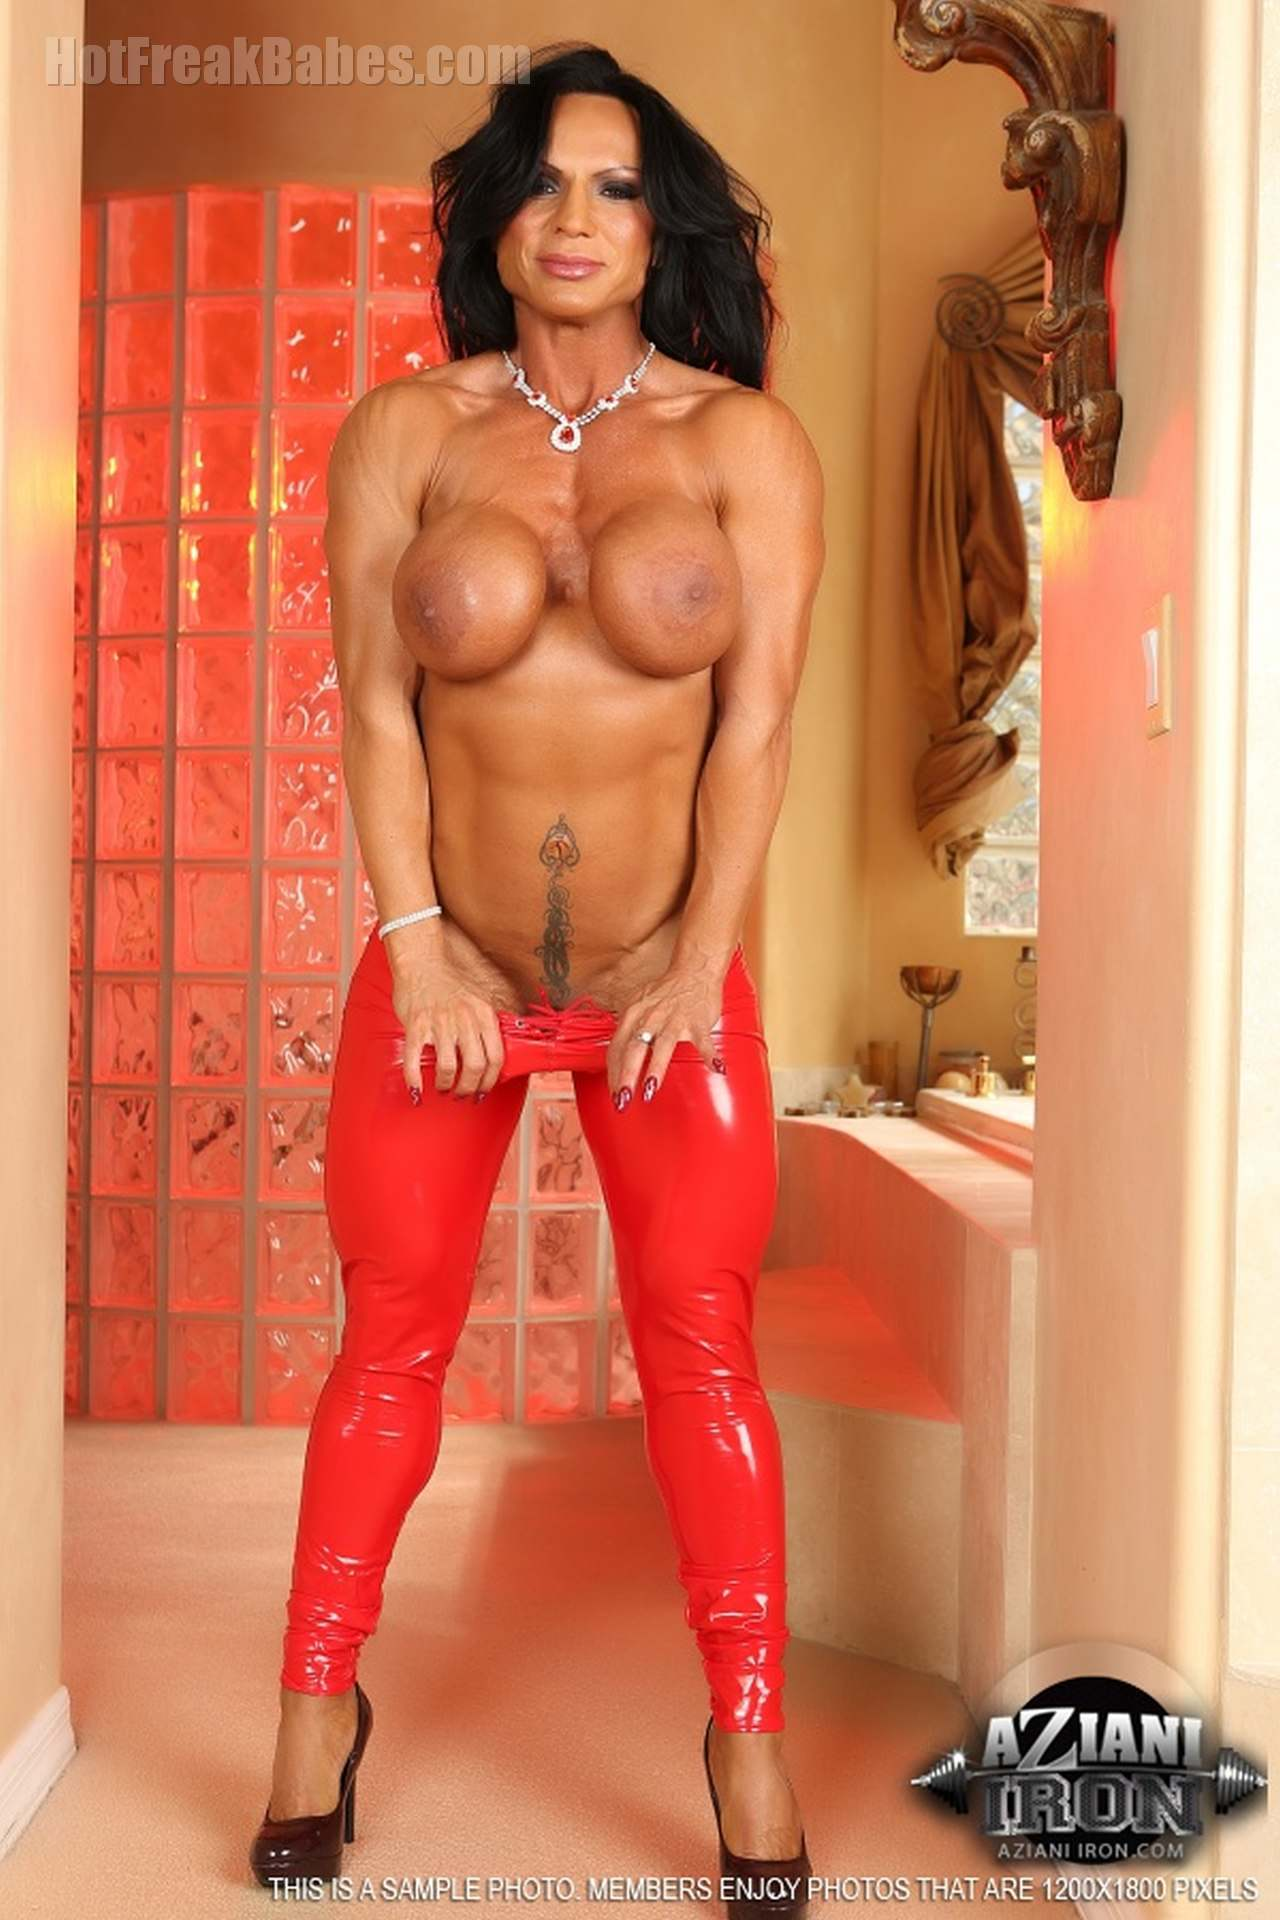 Rhonda Lee, latex, red latex, busty, mature, big tits, fake tits, Aziani Iron, FBB, female bodybuilders, fitness models, muscle posing photos and videos